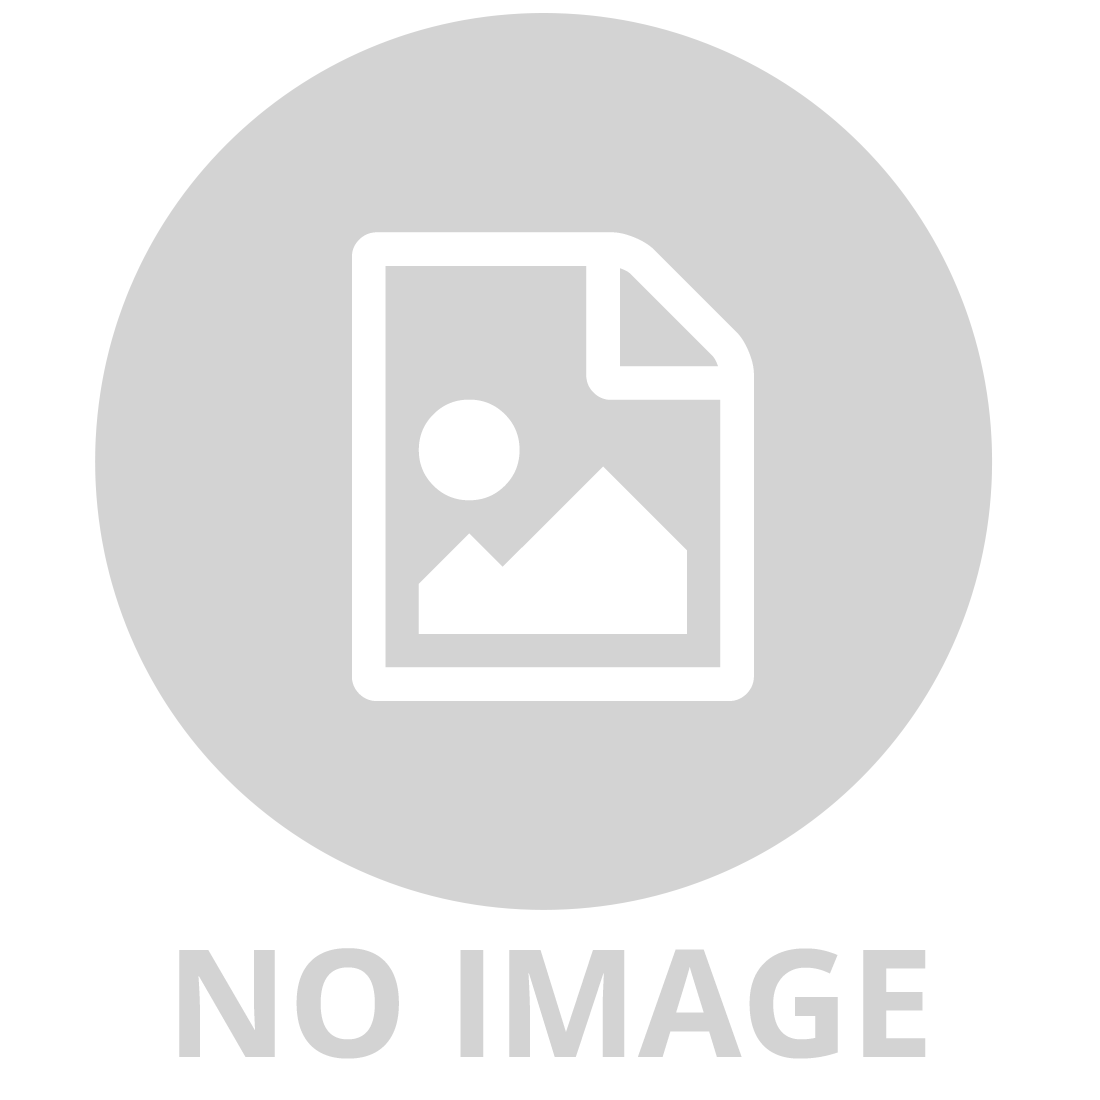 BRIO WOODEN RAILWAY CLASSIC TRAVEL FIGURE 8 SET